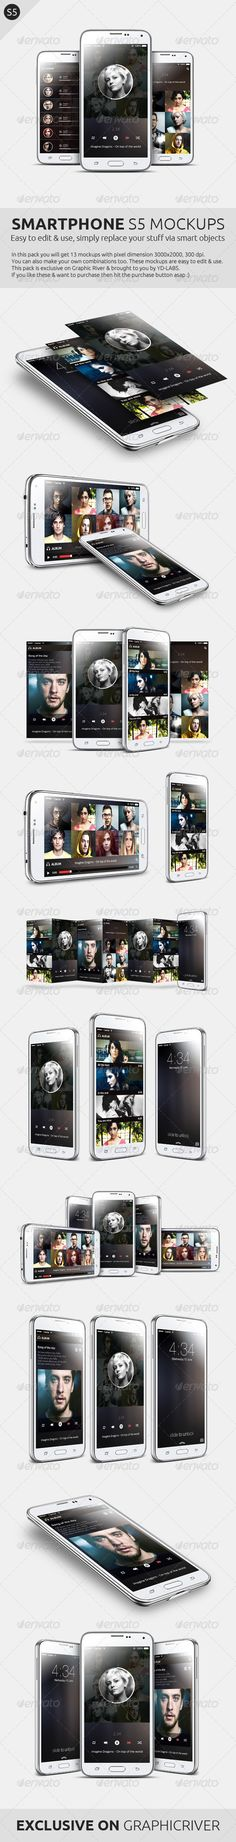 Smartphone S5 Mockups. Showcase Your Work in Style with these Android Smartphone Mockups + Save Time & Money!